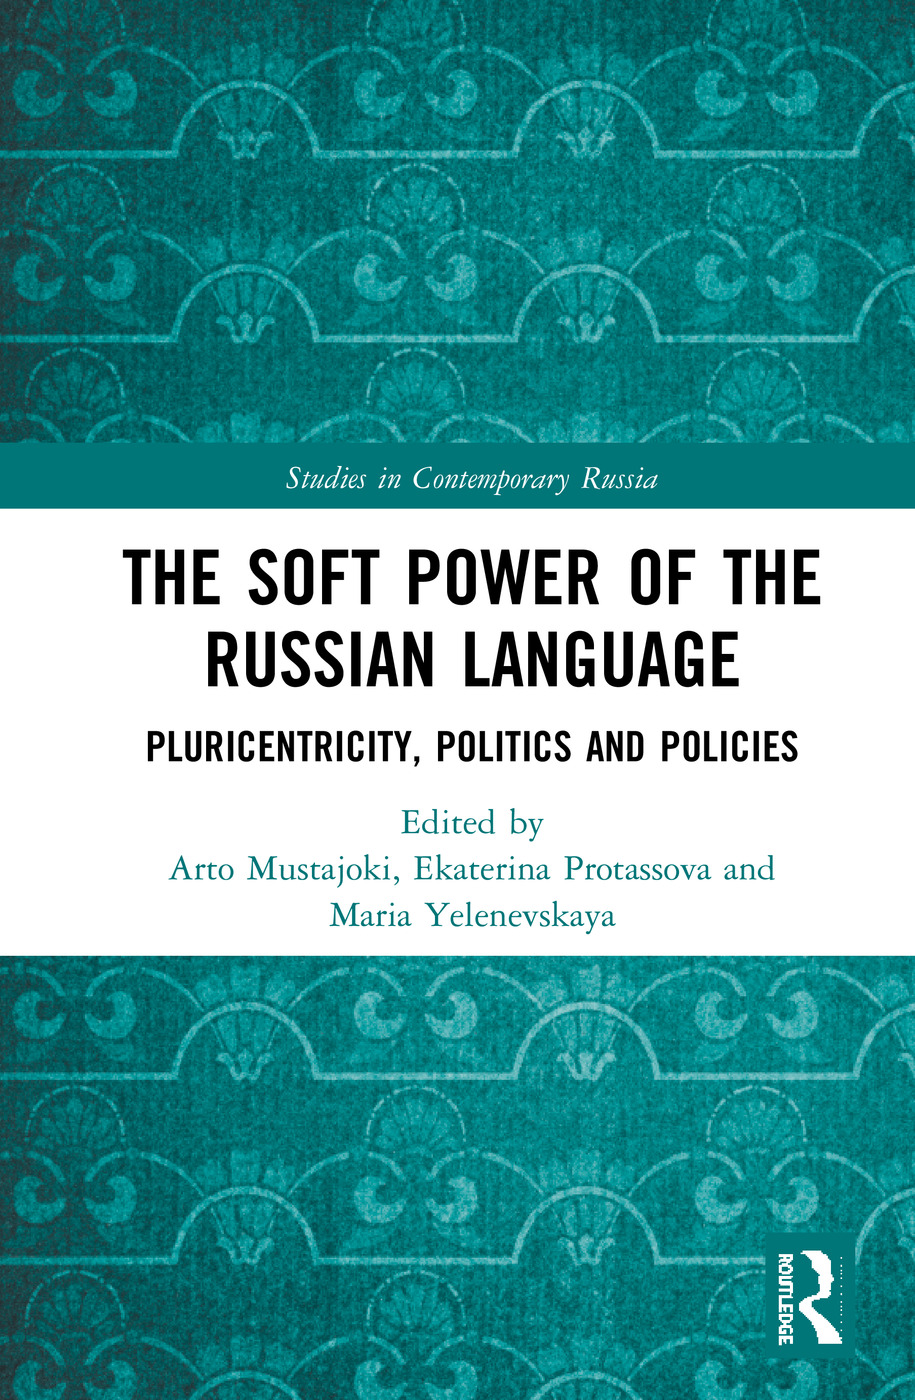 The Soft Power of the Russian Language: Pluricentricity, Politics and Policies, 1st Edition (Hardback) book cover